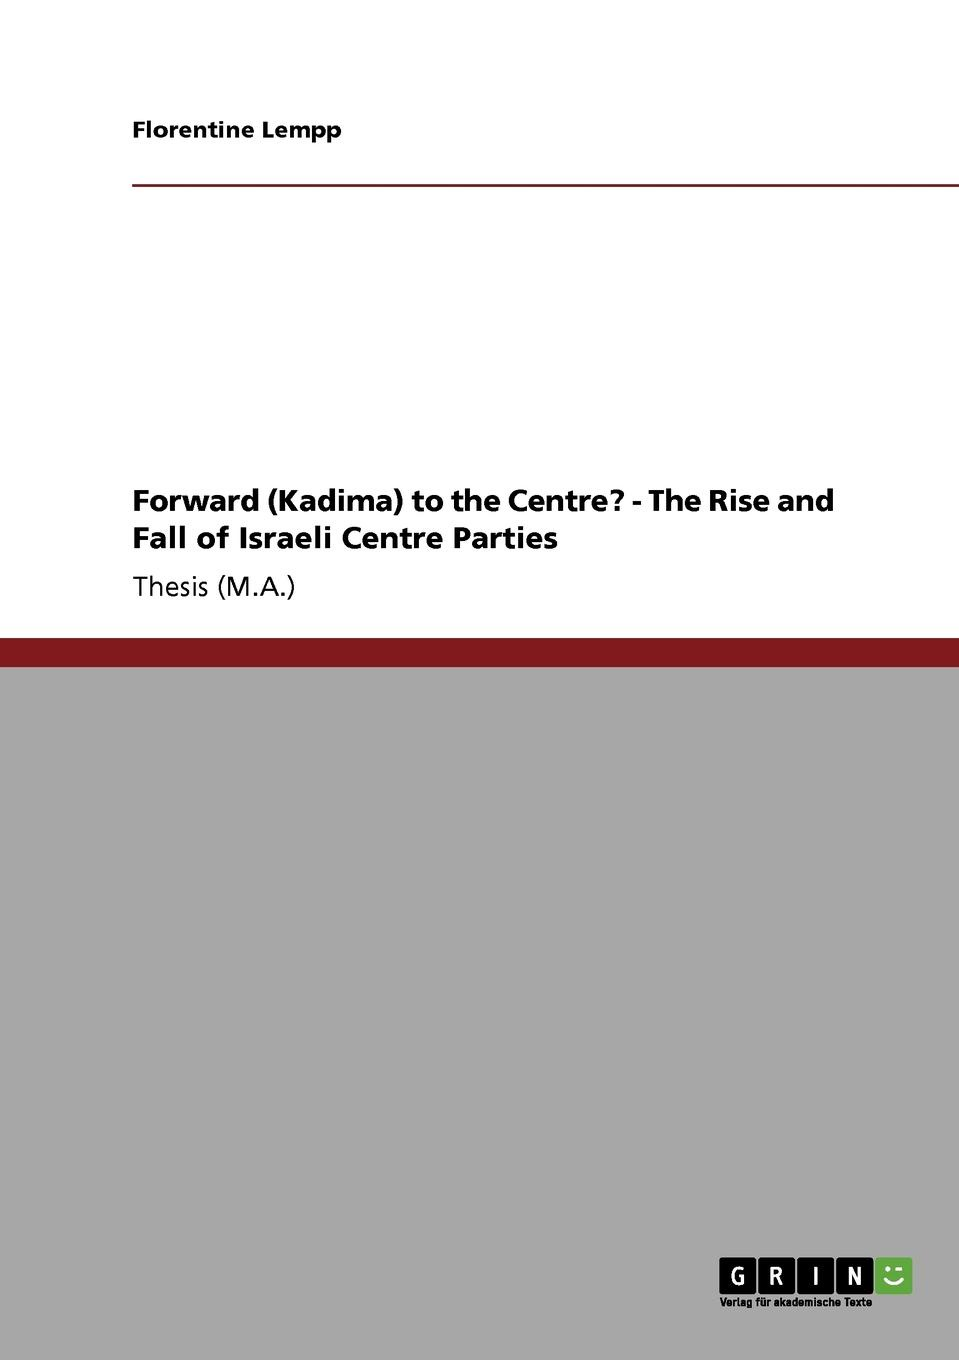 Florentine Lempp Forward (Kadima) to the Centre. - The Rise and Fall of Israeli Centre Parties gktools plastic centre finder to find the center point of a circular workpiece z073b z073